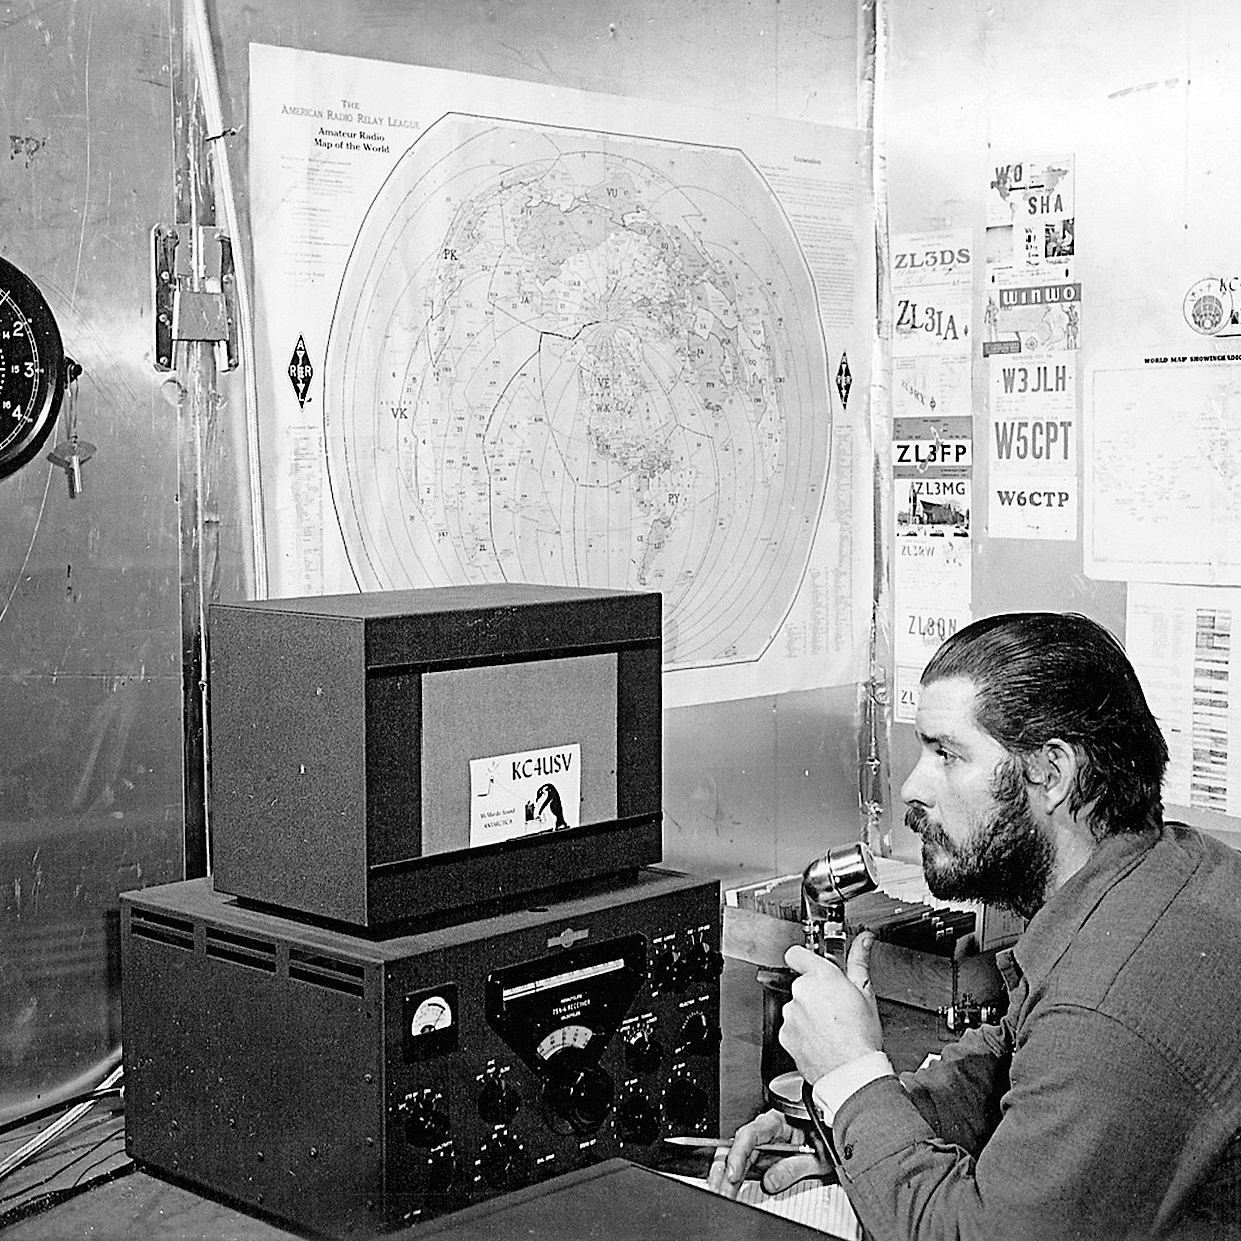 U.S. Navy Chief Petty Officer Adrey Garret uses a ham radio at Williams Air Operating Facility during the 1956 winter. Ham radio was the only means of voice communication with friends and family back in the U.S. for navy personnel living and working in Antarctica in the days before satellite telephone technology became common.